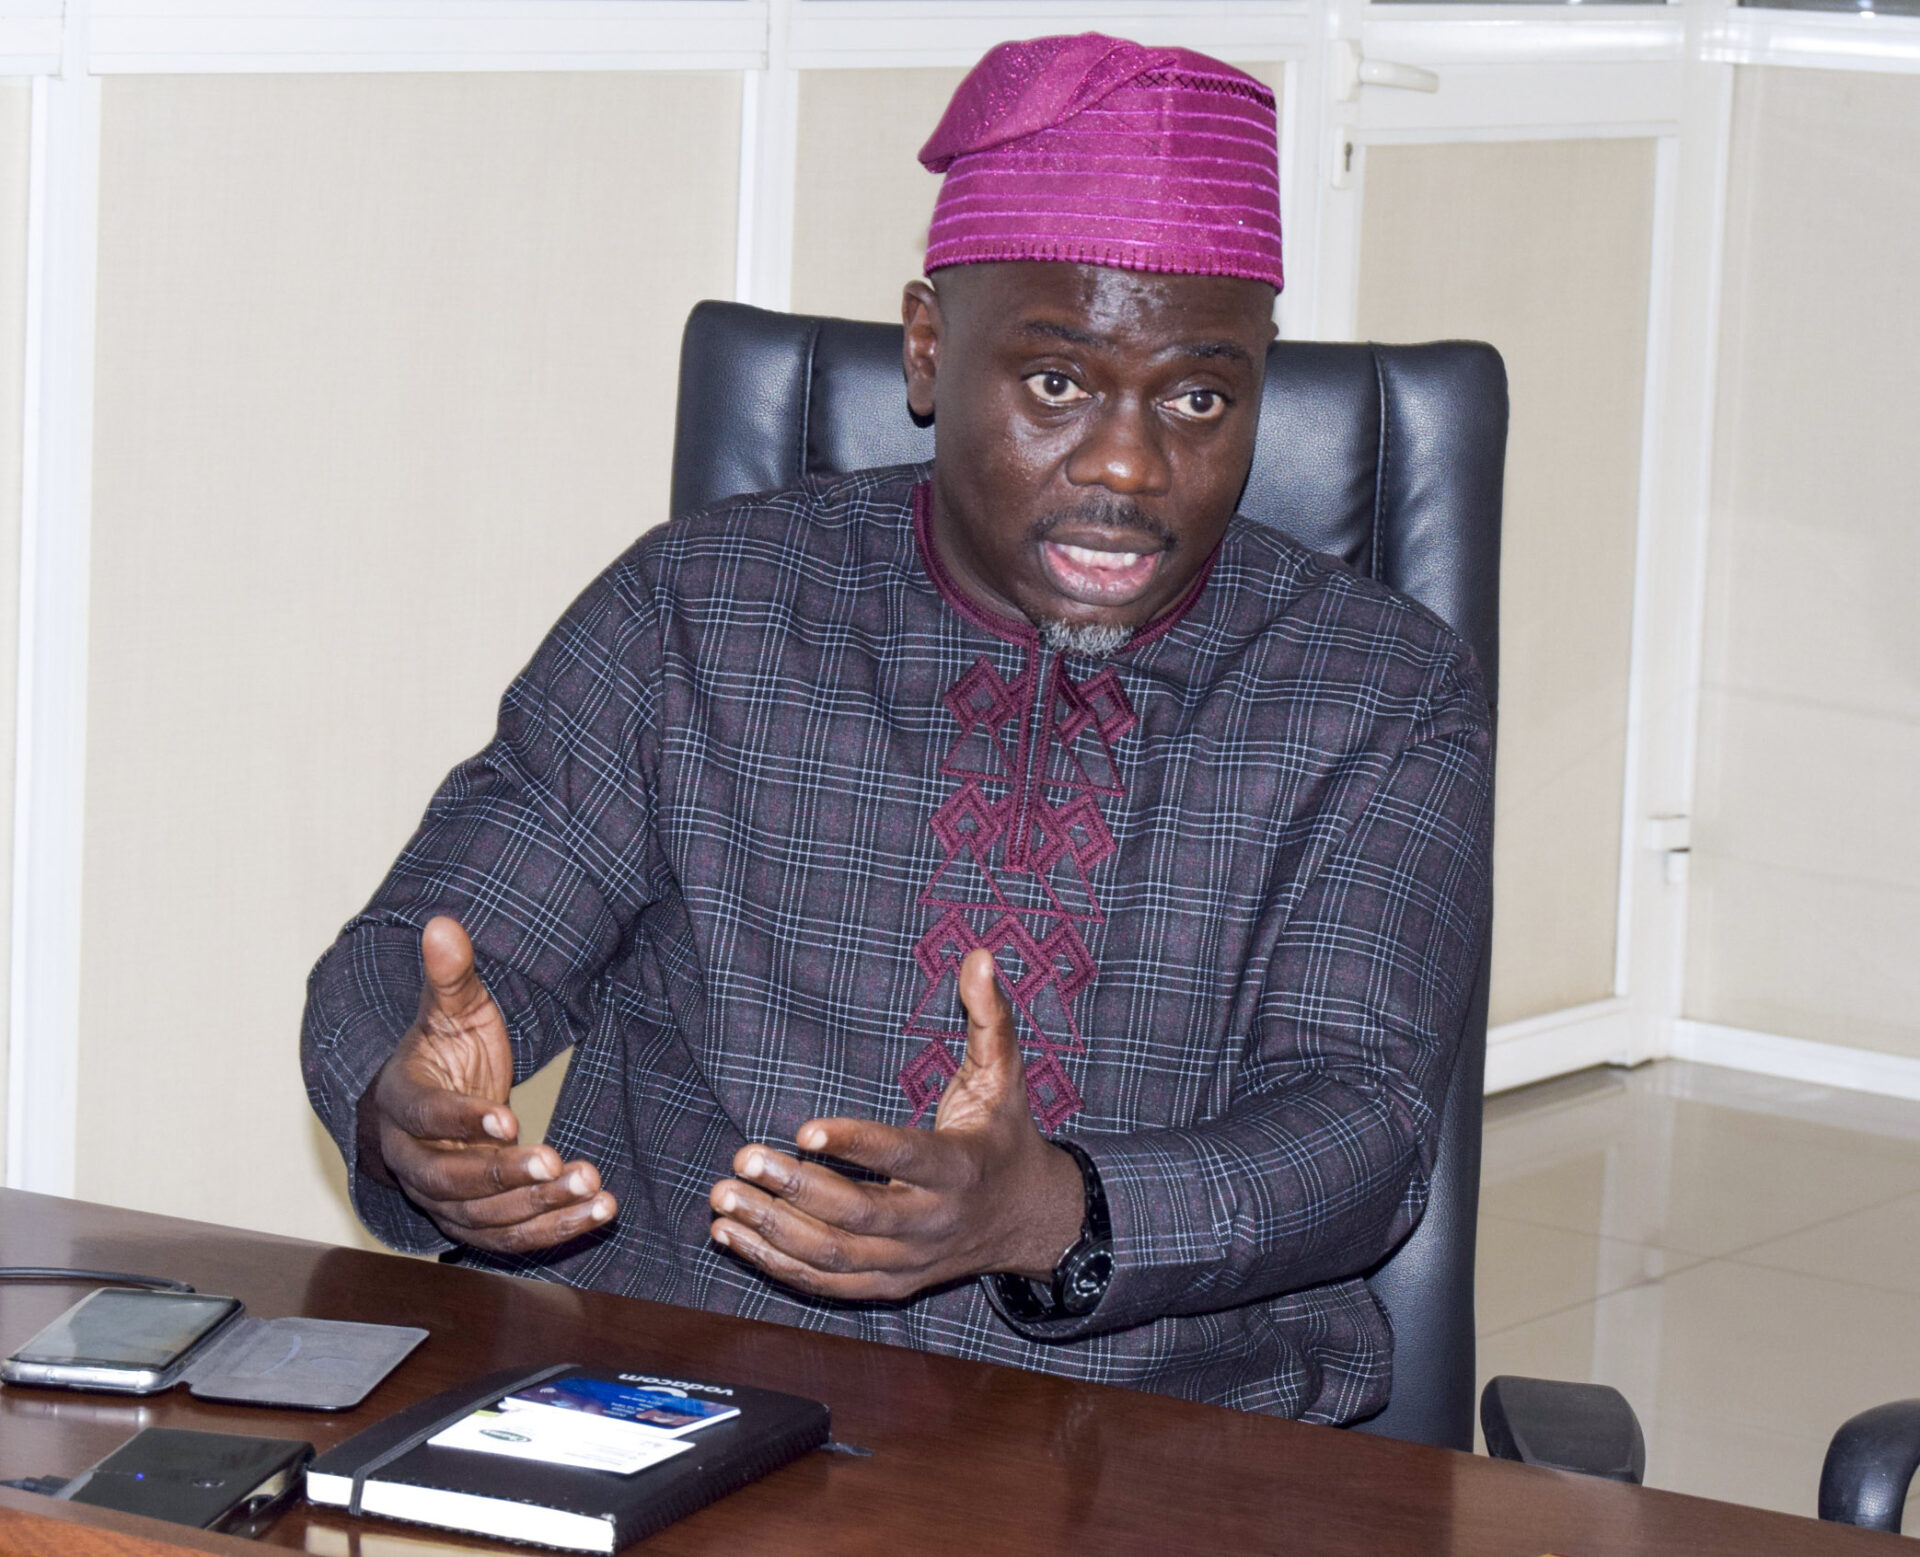 DAWN DG, Owoseni Clear Misconceptions About Amotekun's Mode of Operation, Others